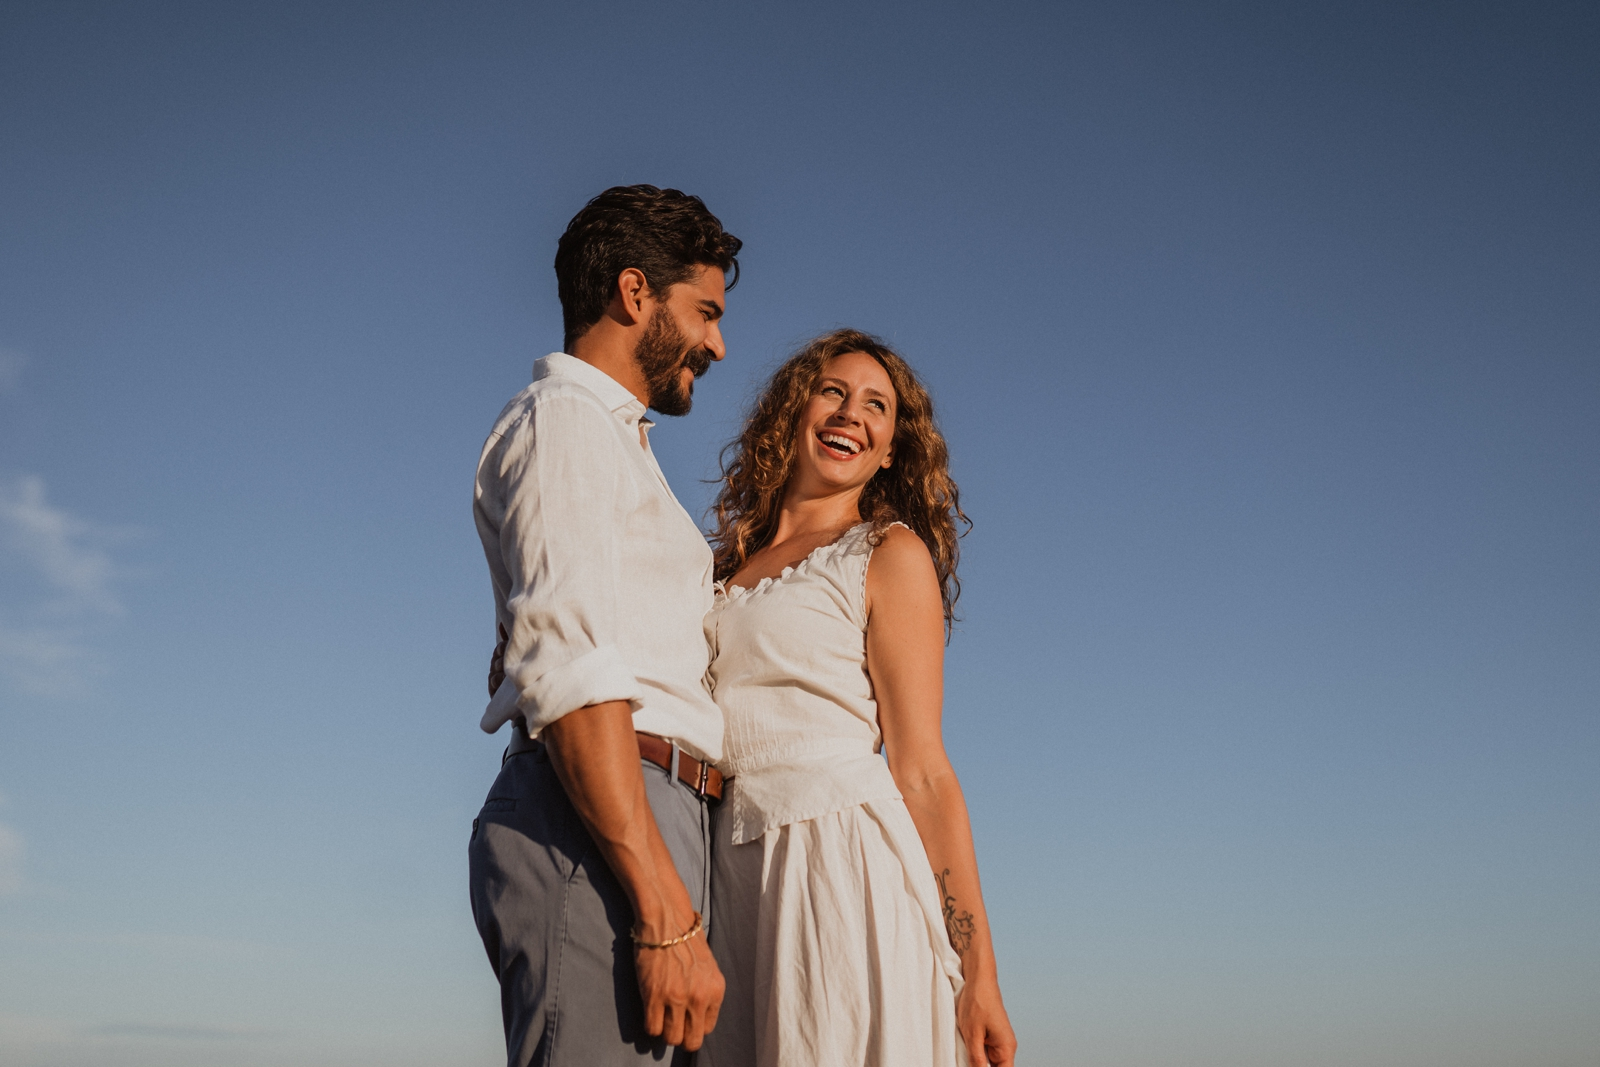 JJP_Nikki & Bud_Shadmoor_Montauk_NY_Cliff Engagement Session37.jpg_blog.jpg